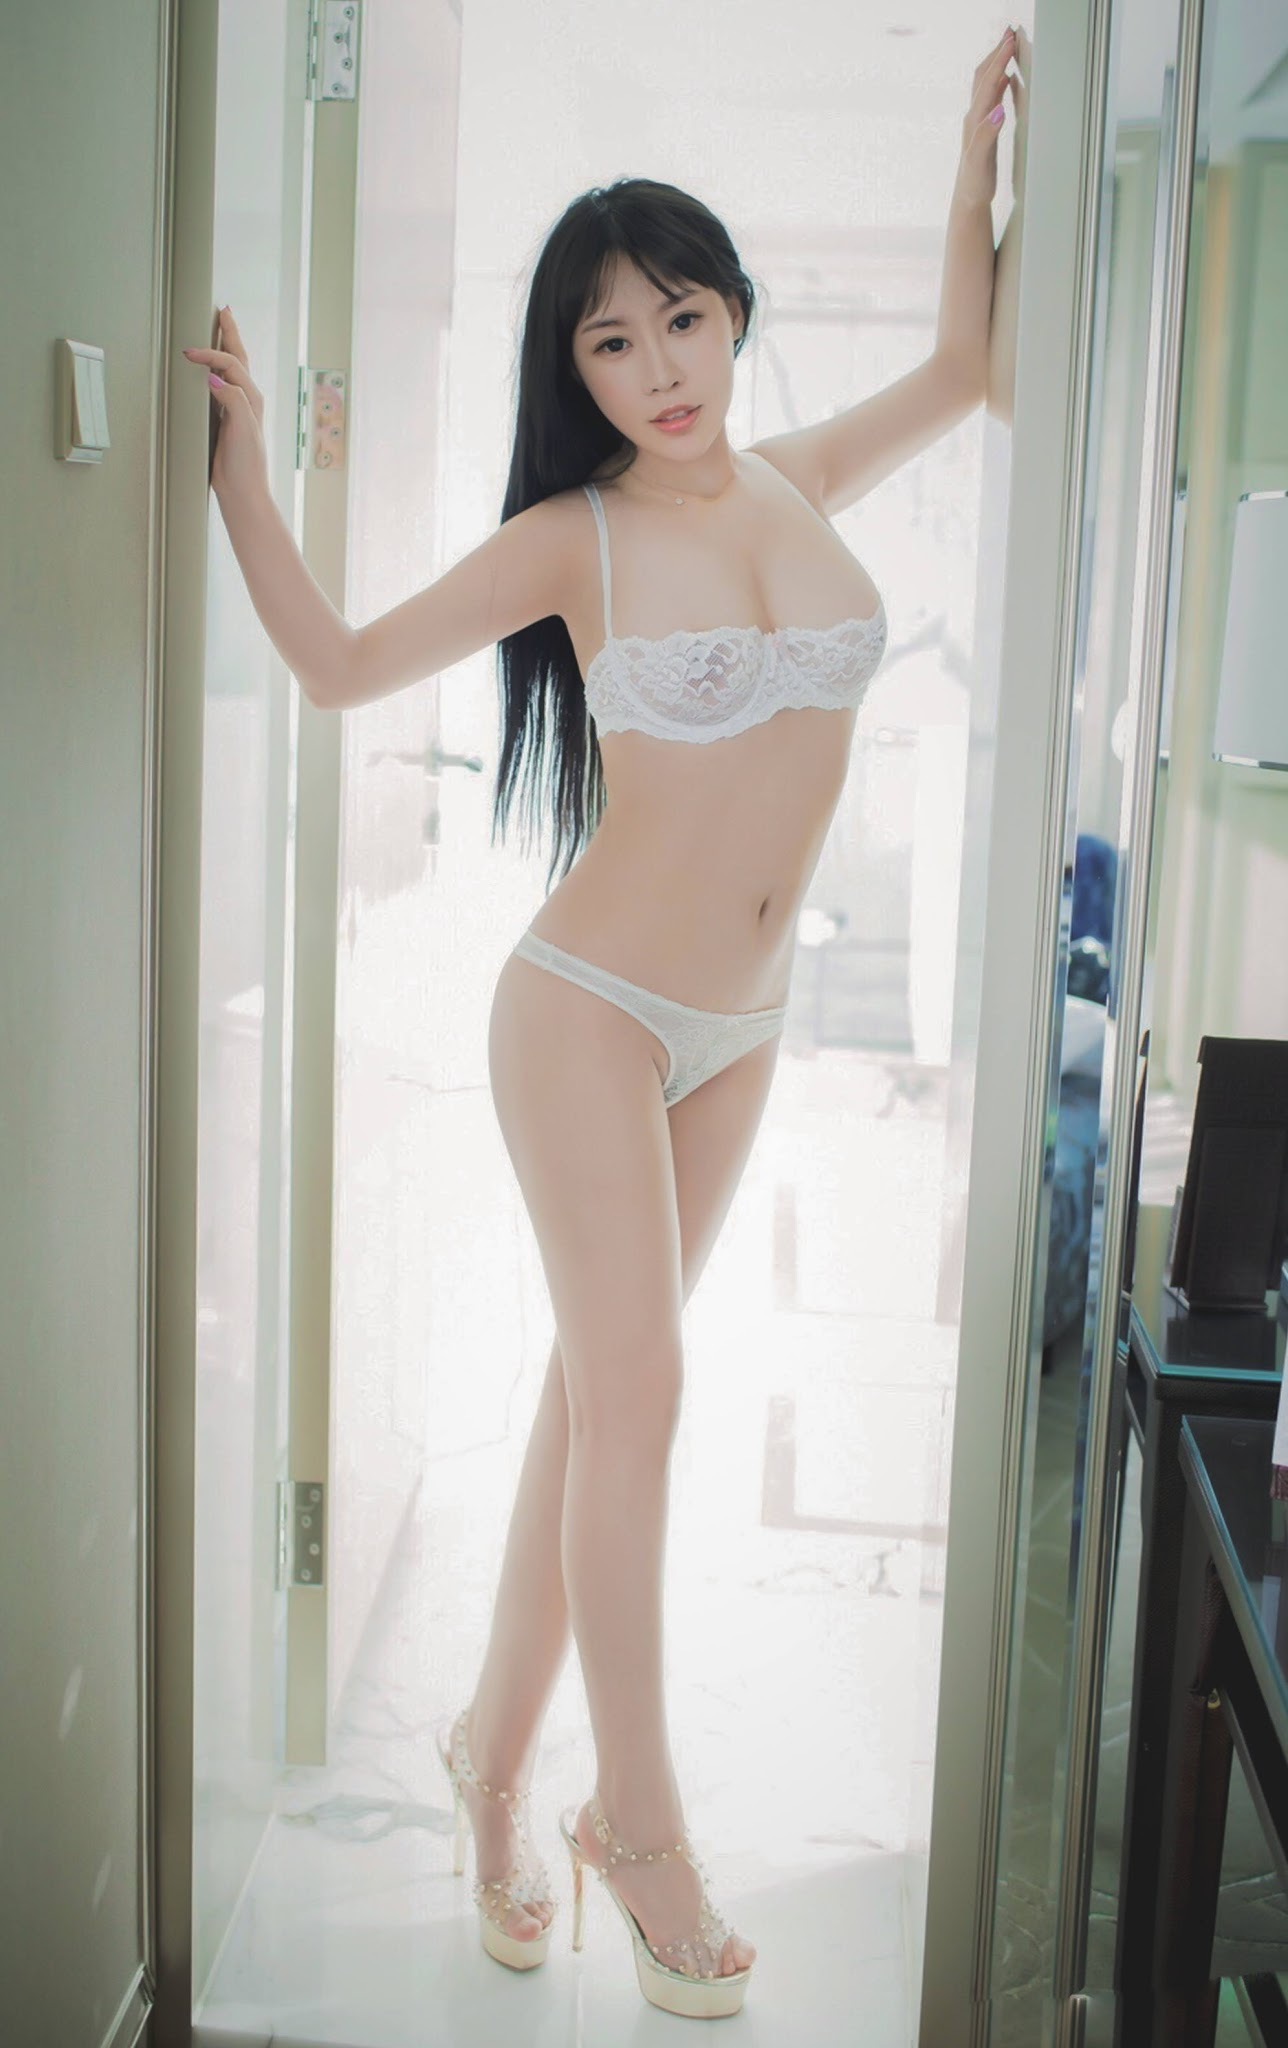 chinese girl nude on playboy